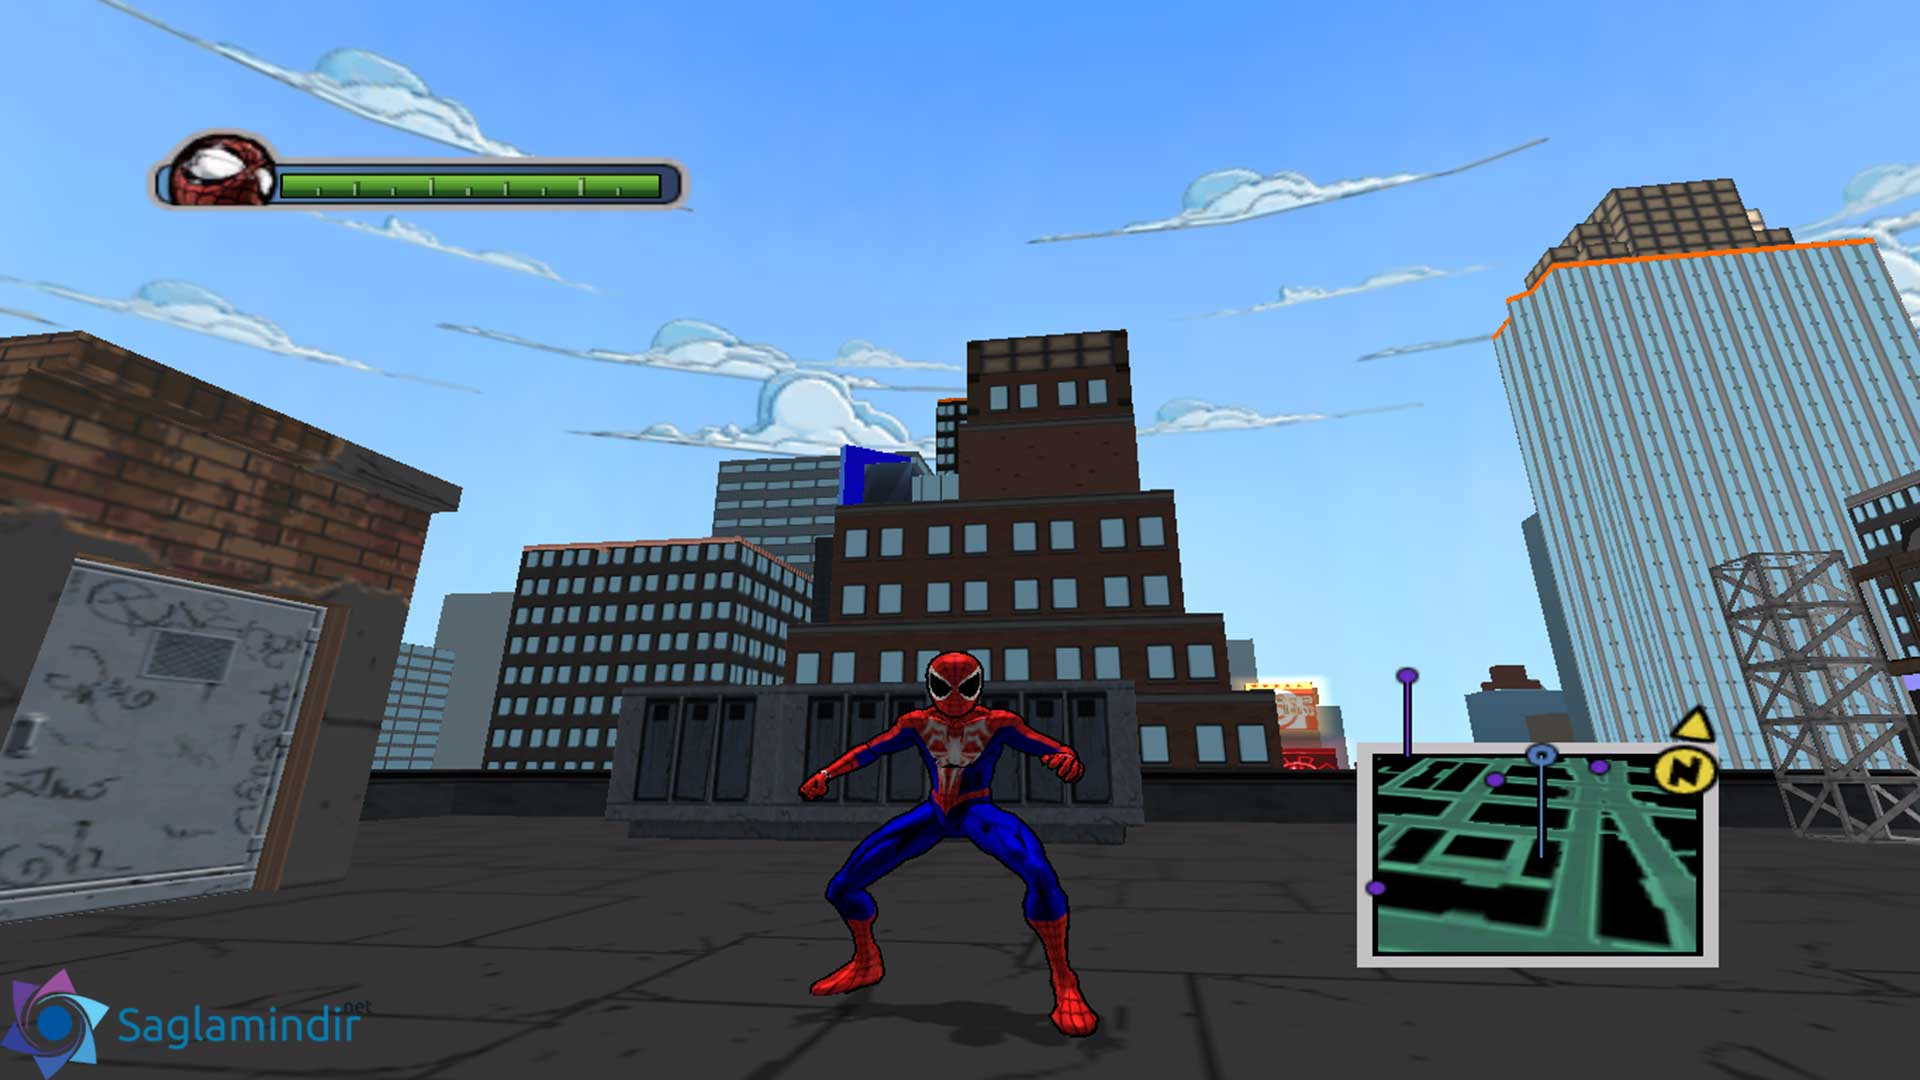 Ultimate Spider Man saglamindir